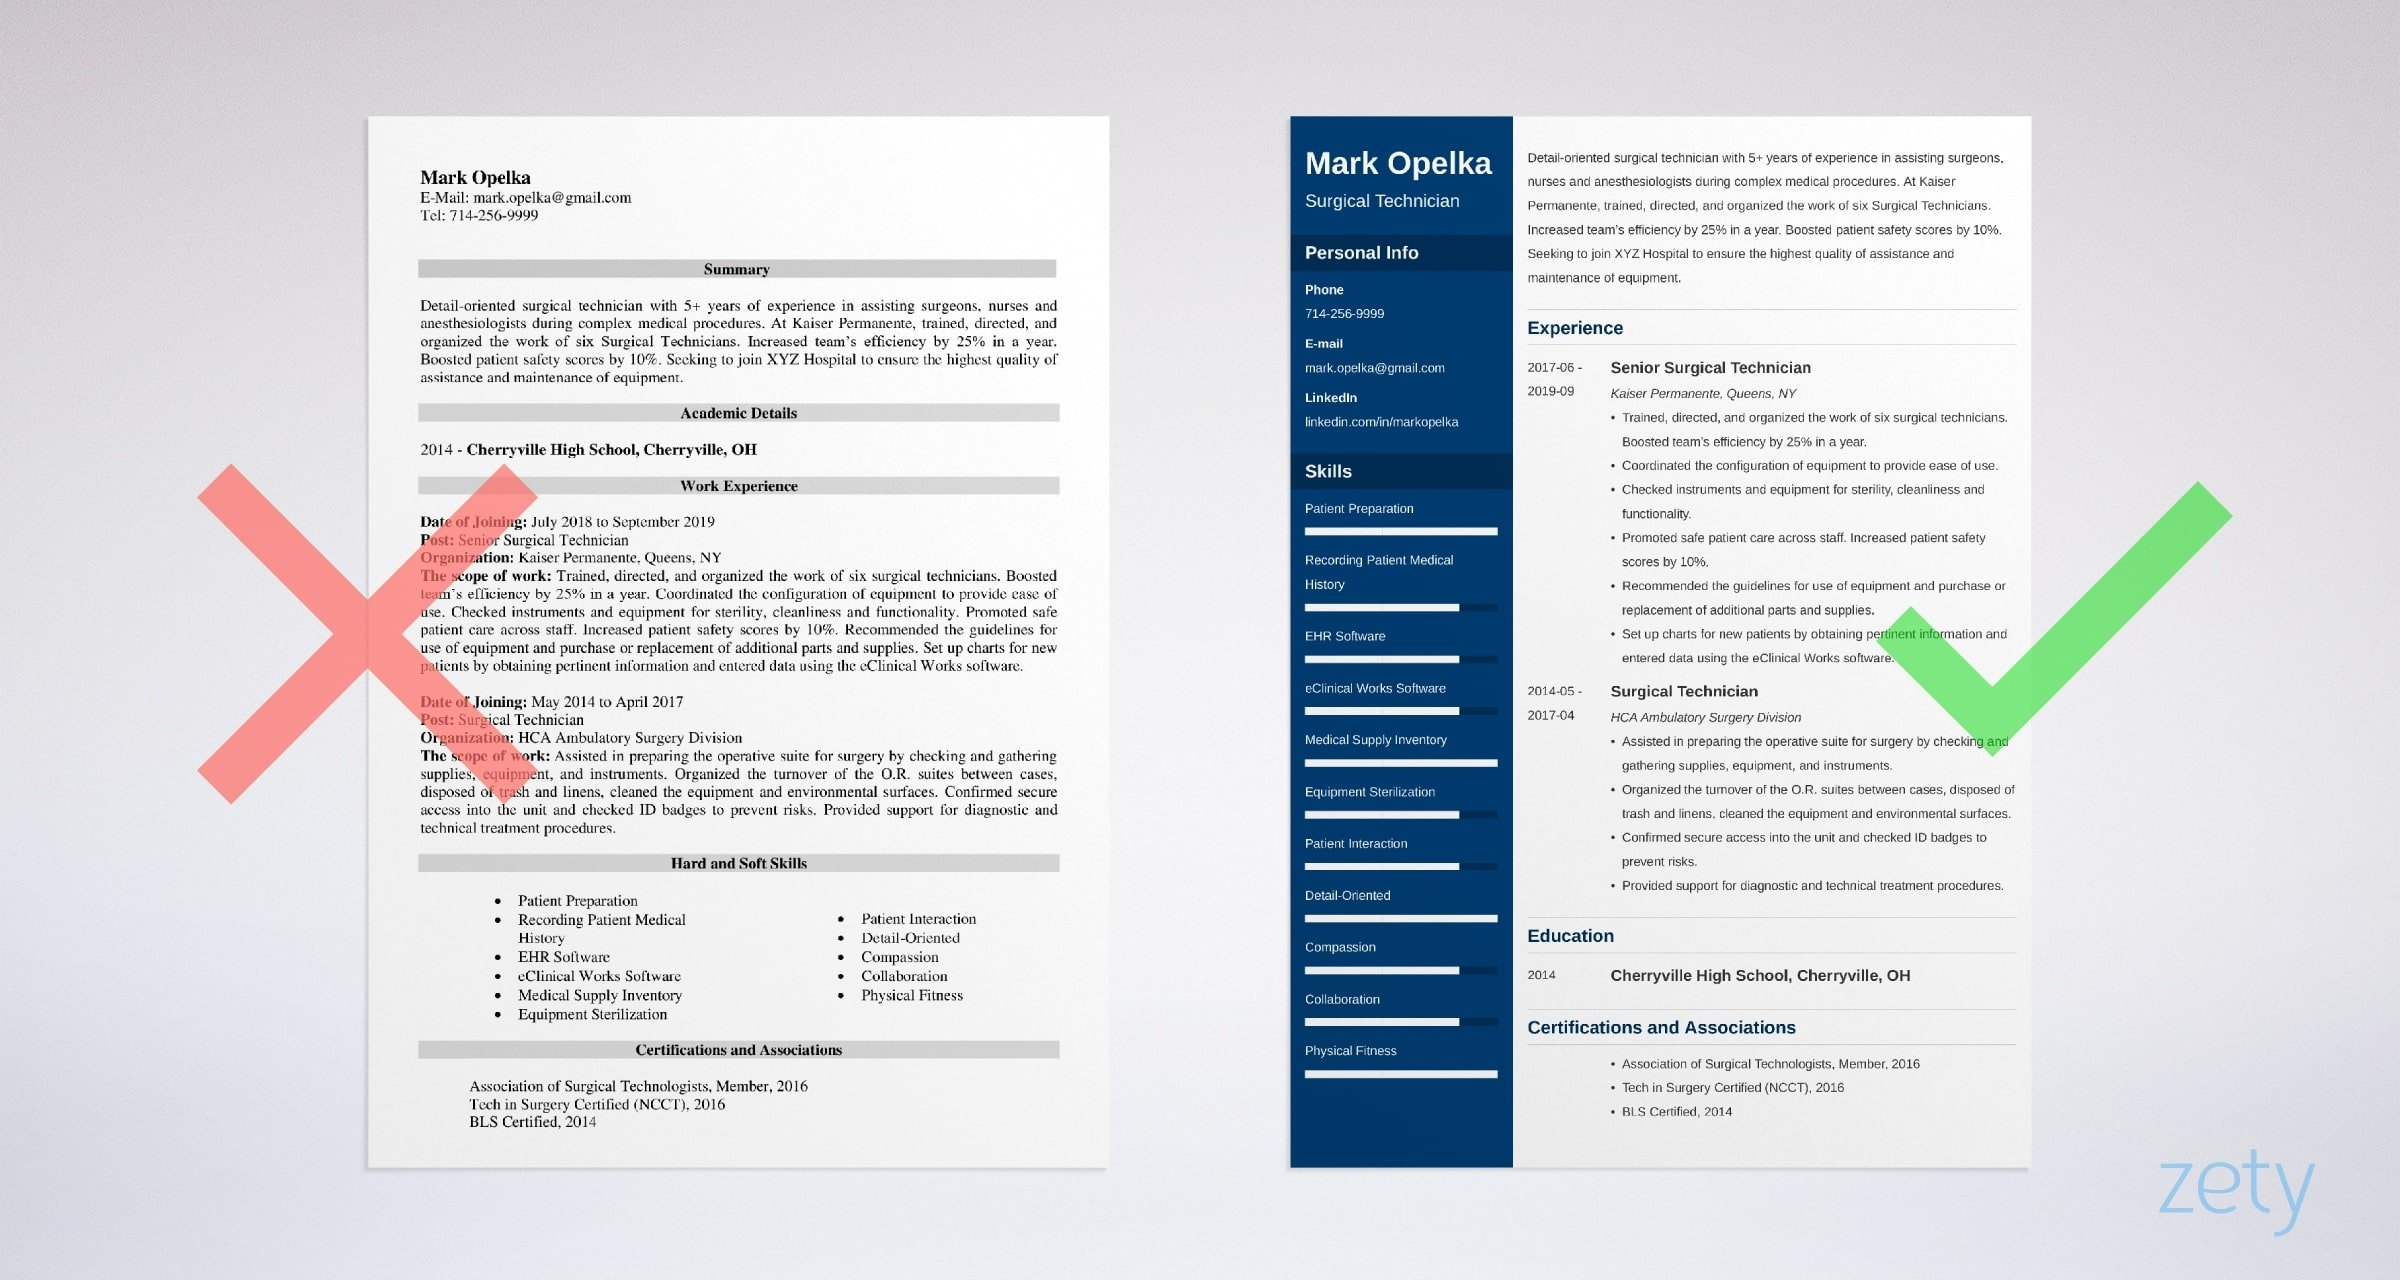 Surgical Technologist & Technician Resume Sample (25+ Tips)